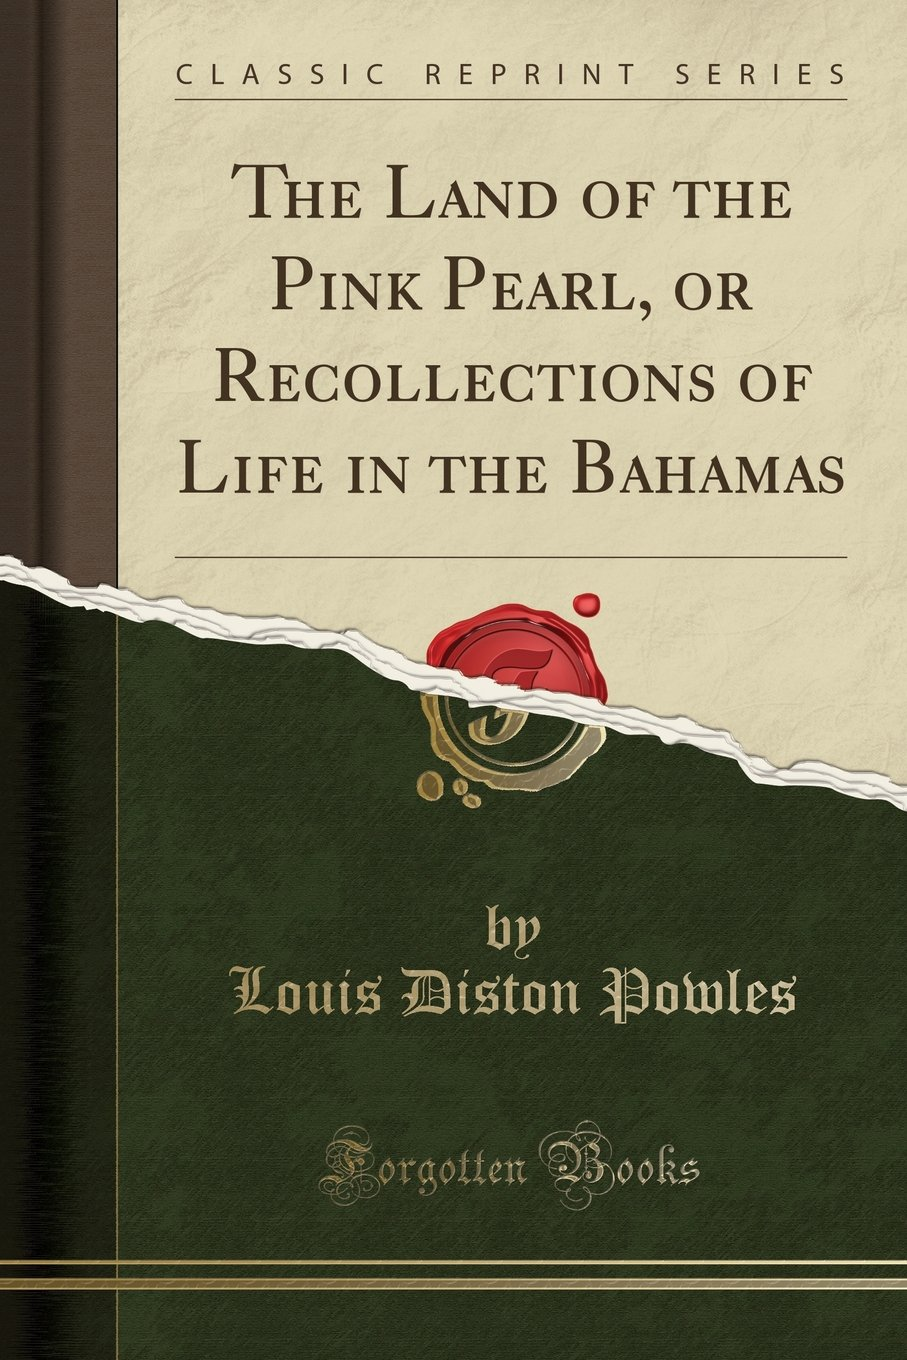 The Land of the Pink Pearl, or Recollections of Life in the Bahamas (Classic Reprint) PDF